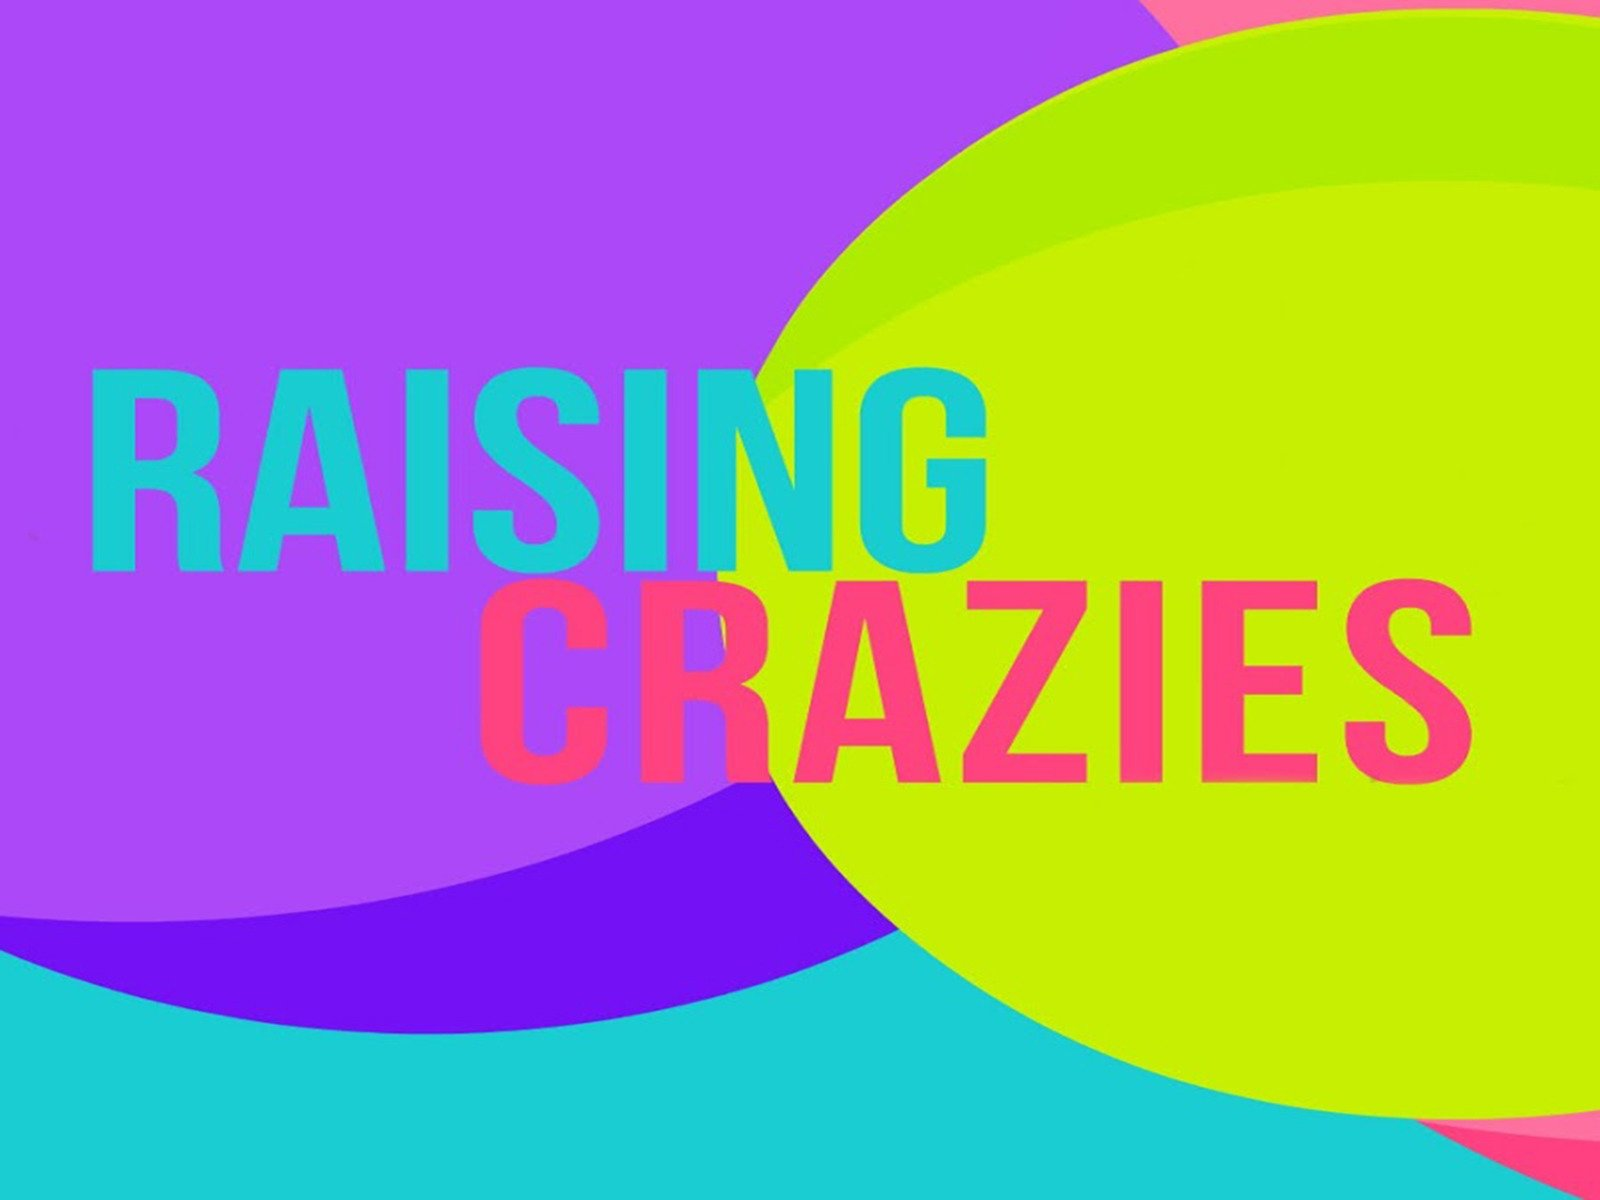 Raising Crazies - Season 1